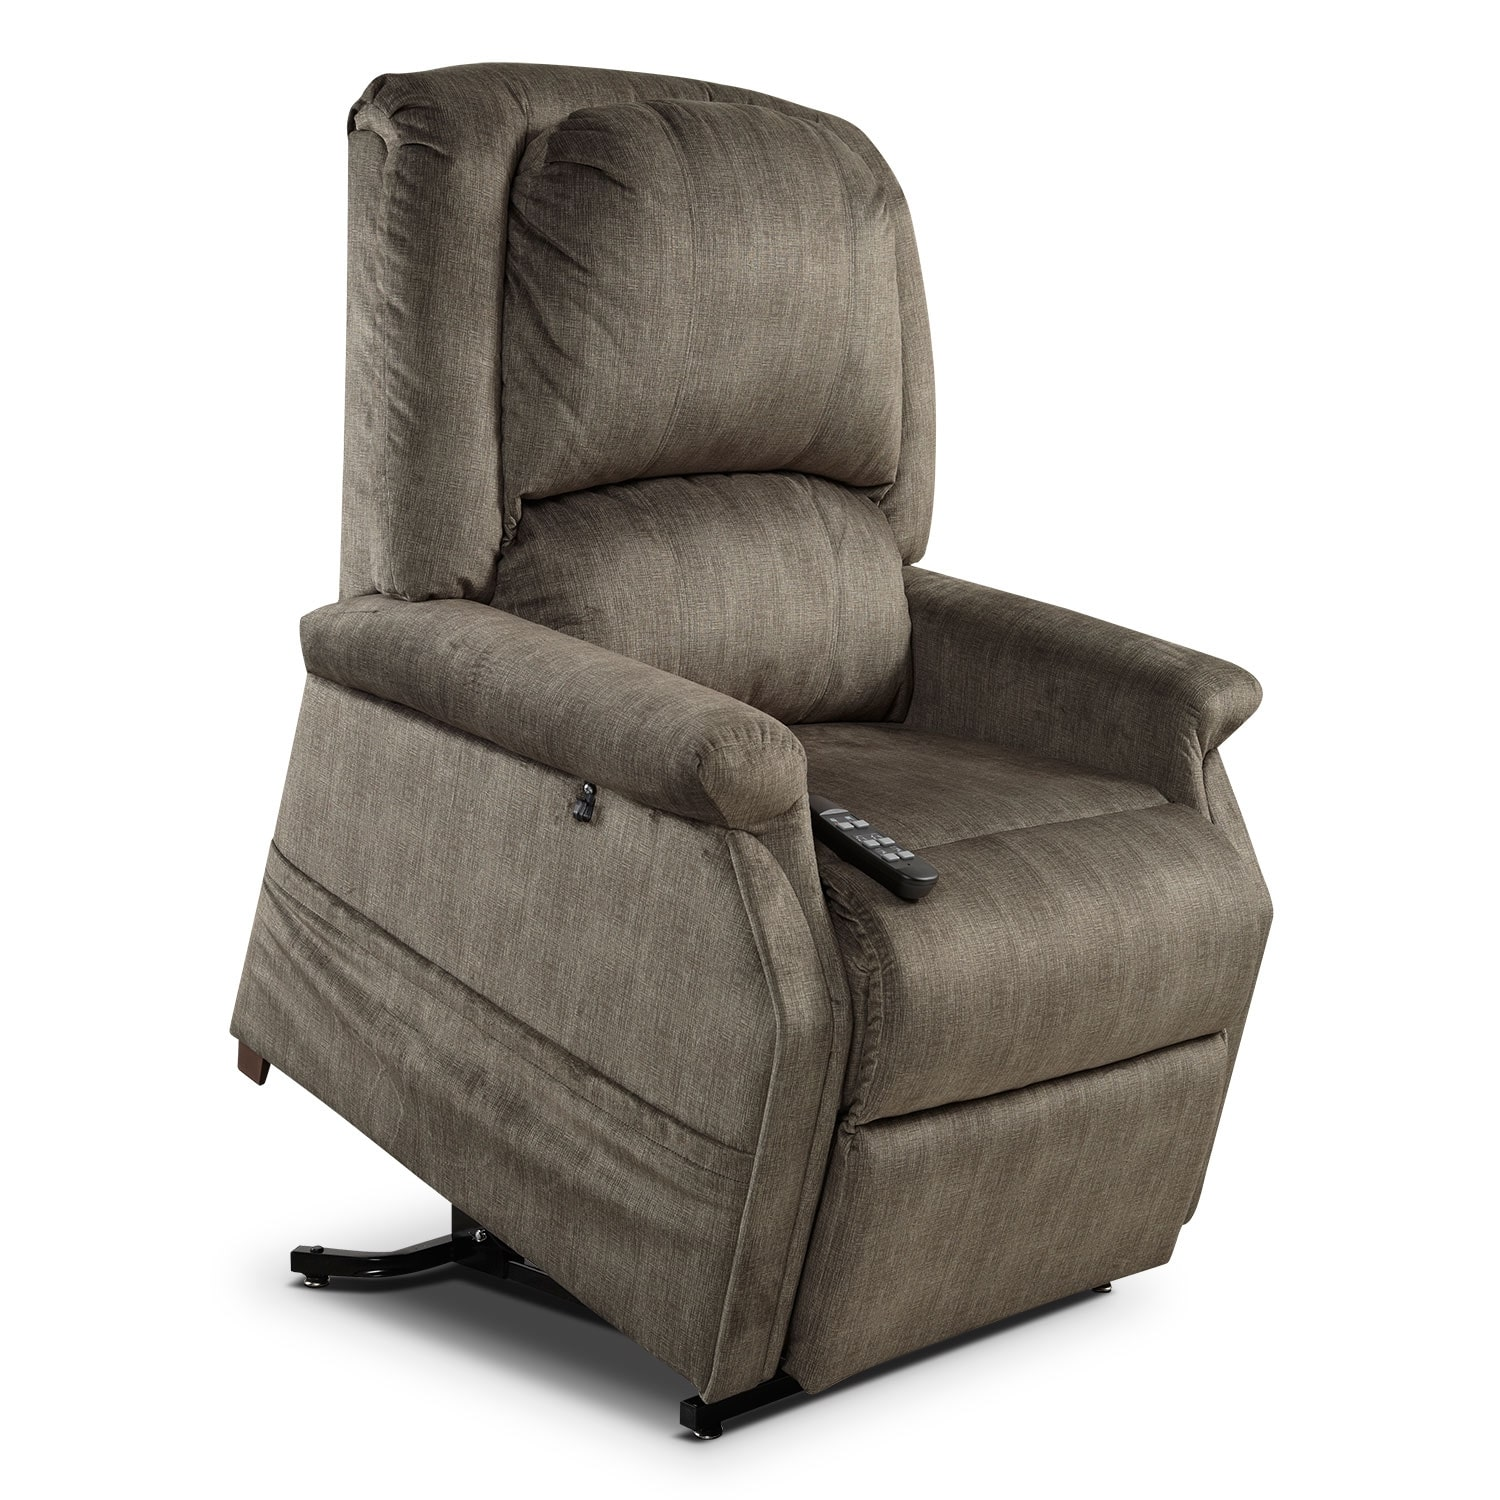 Manny Lift Chair